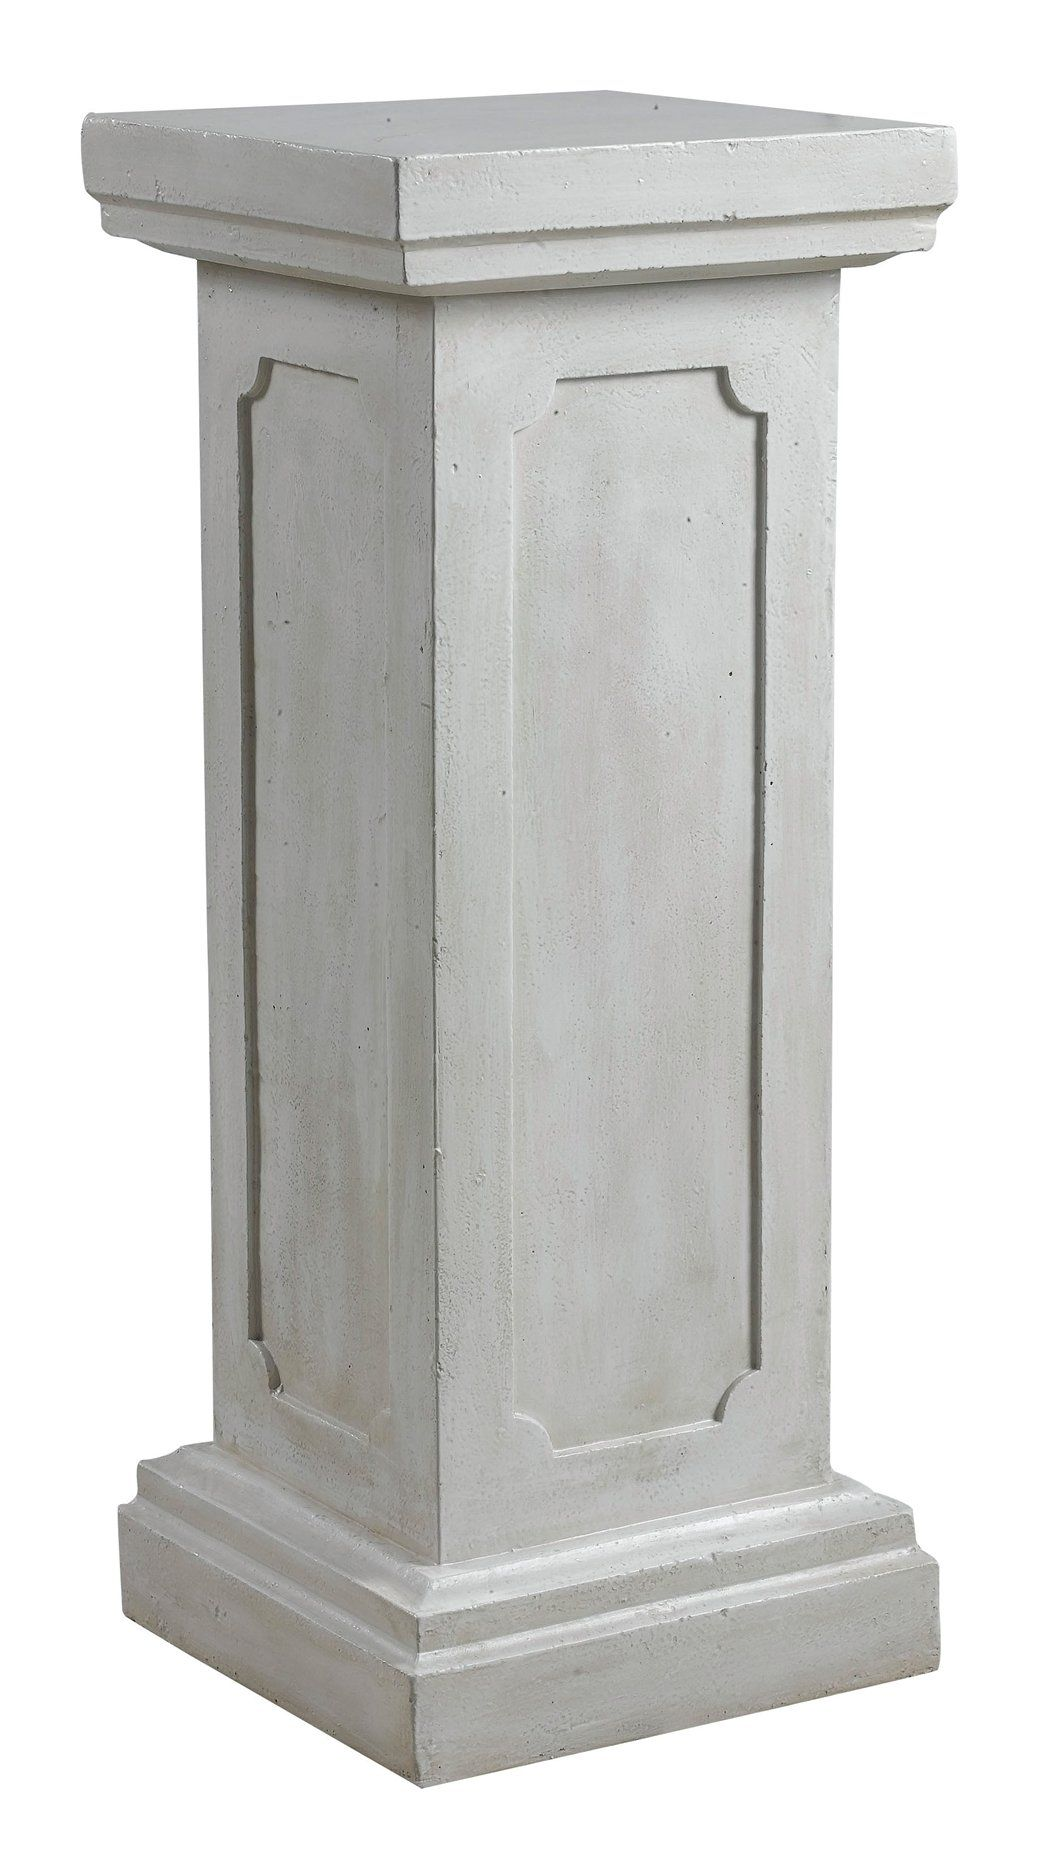 White Pedestal Plant Stands Square White Wash Columns For The Ceremony Aisle Mouse